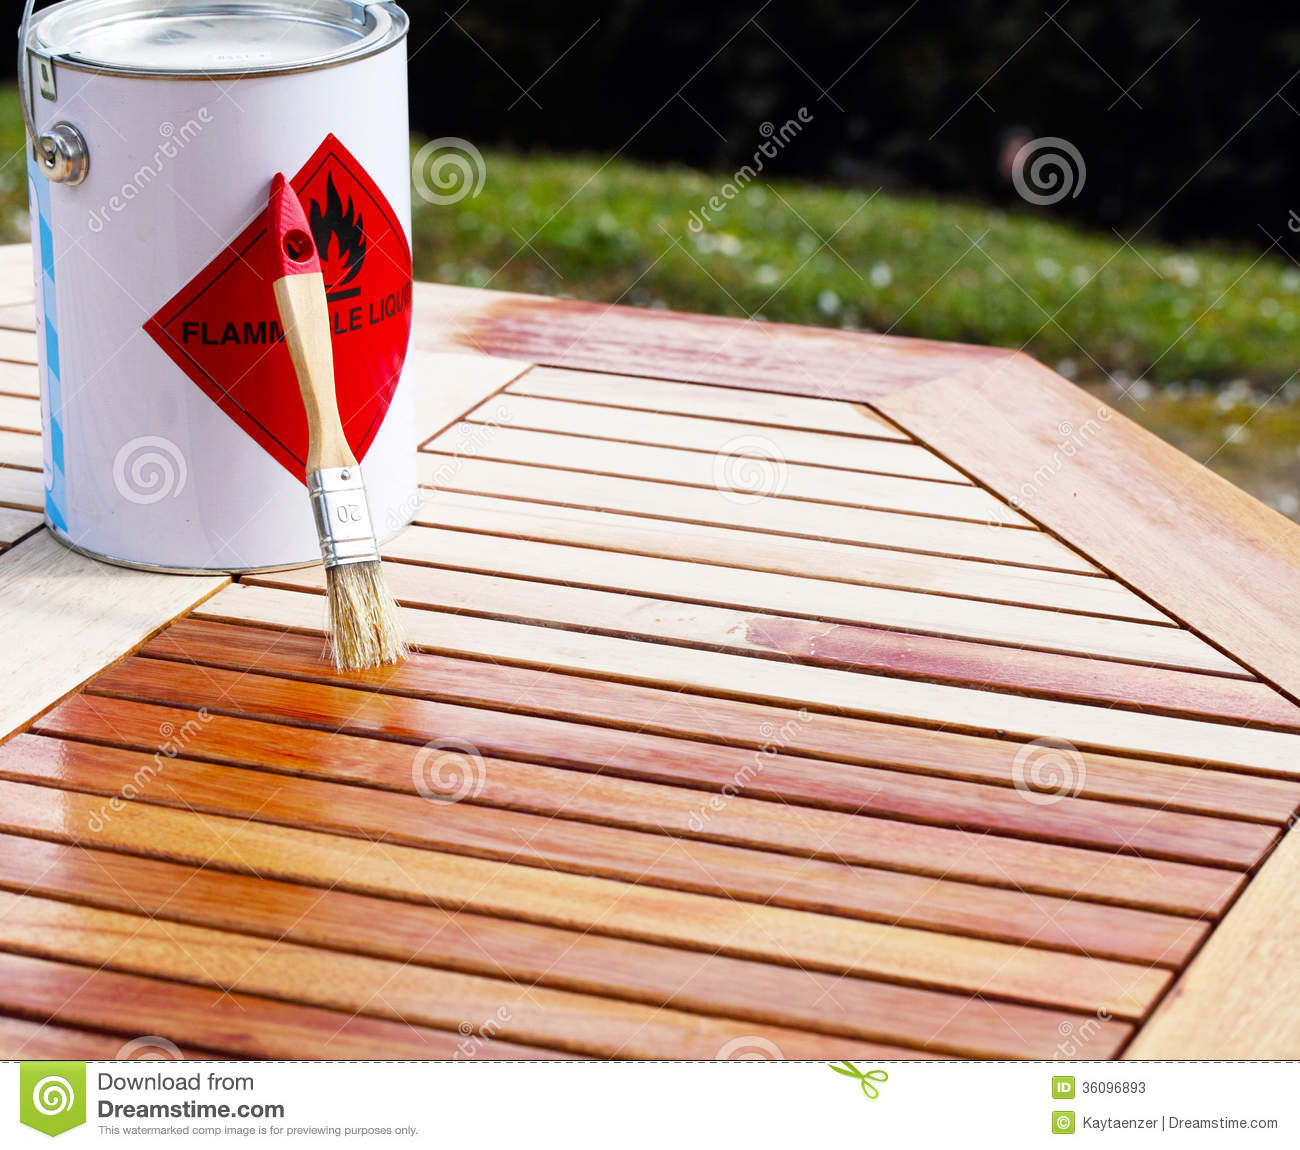 Oil Wood Furniture Stock Photos Image: 36096893. Full resolution  image, nominally Width 1300 Height 1150 pixels, image with #C21009.